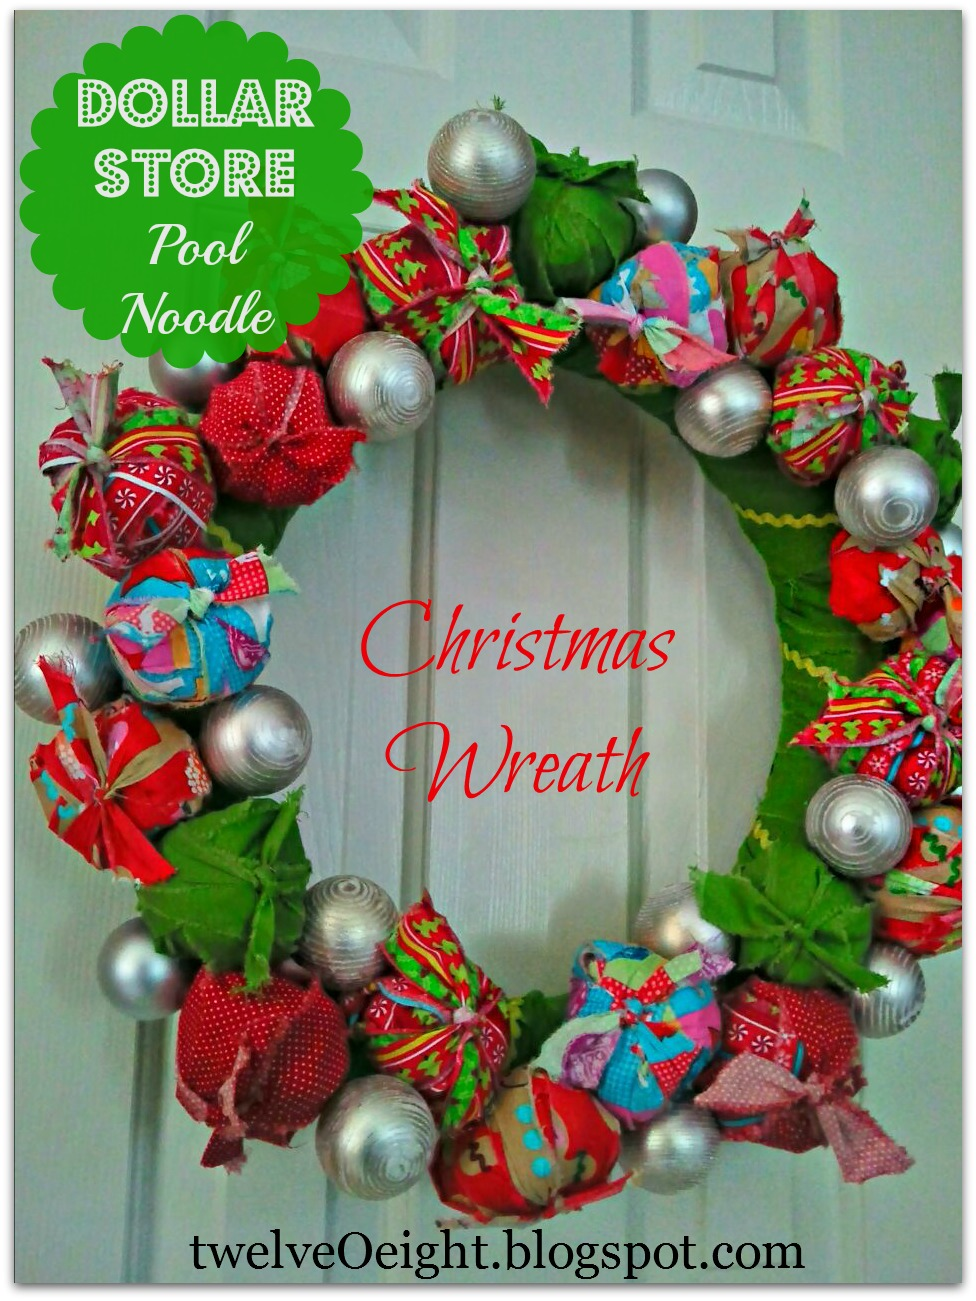 dollar store christmas crafts pool noodle christmas wreath - Dollar Store Christmas Crafts